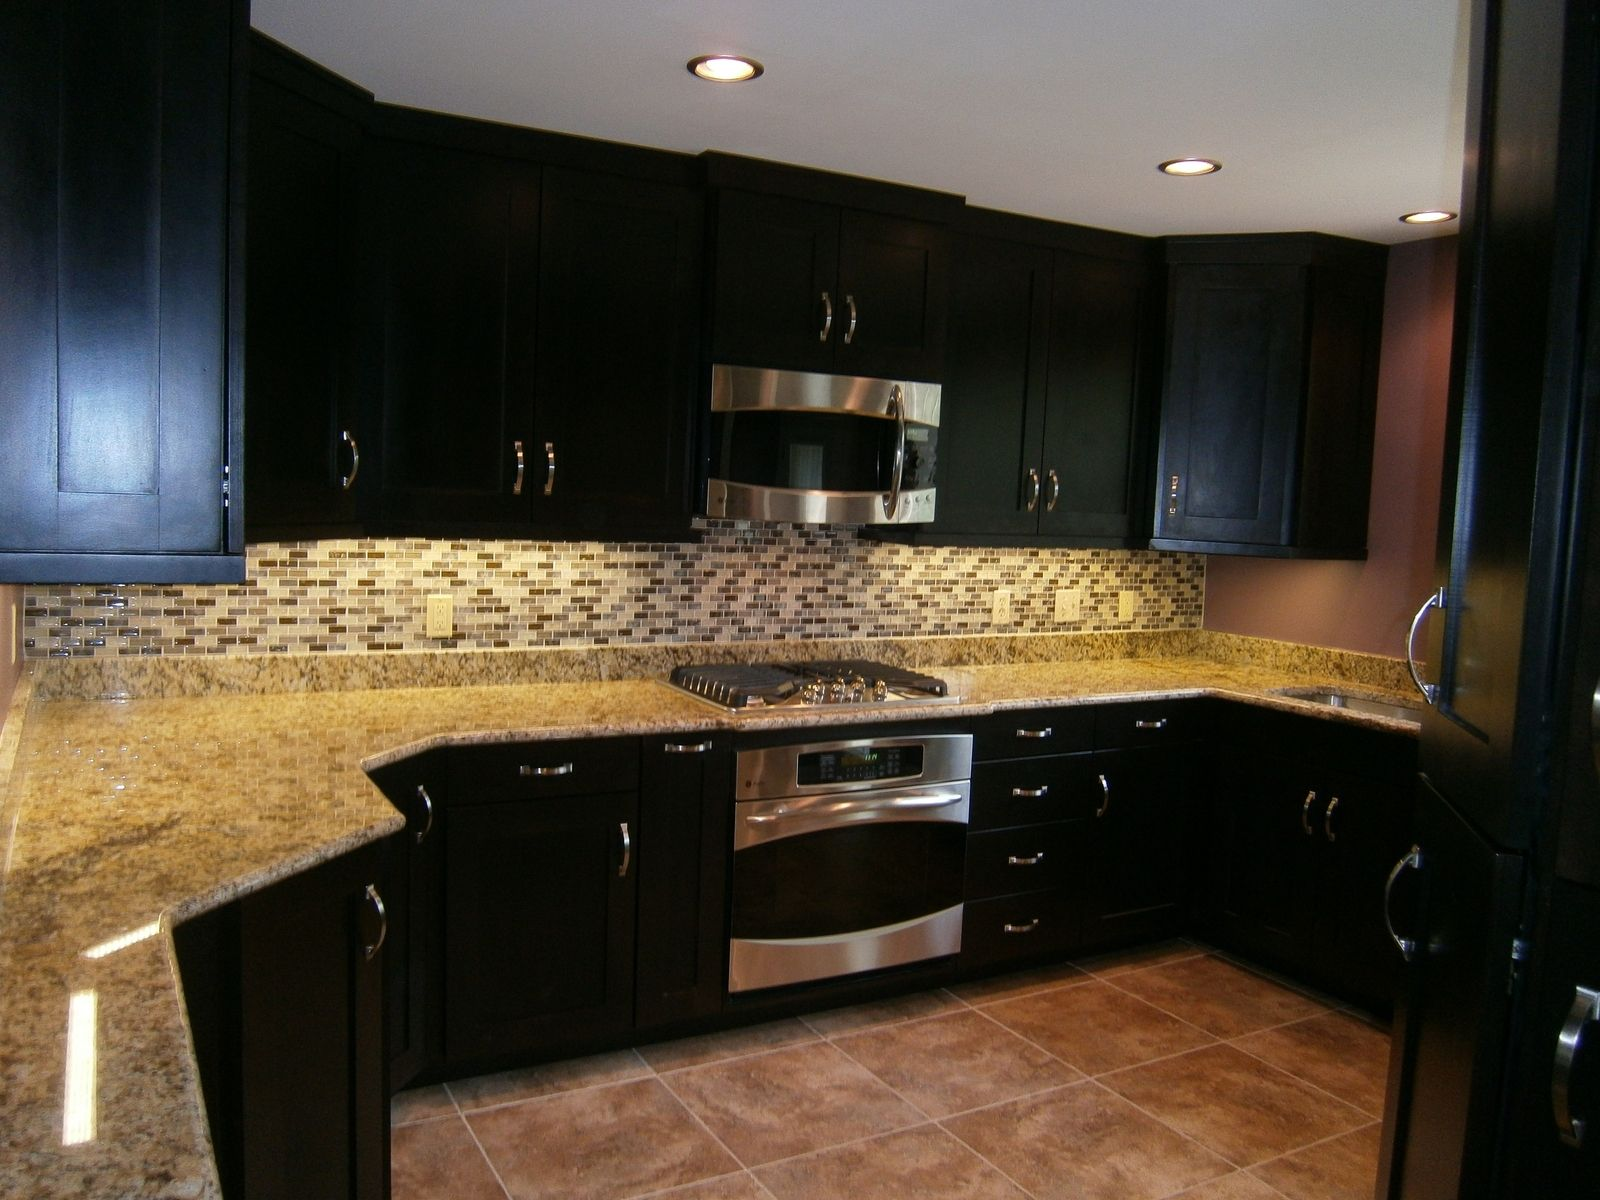 kitchen cabinet stain Excellent White Gray Glass Tile Backsplash And Brown Mosaic Granite Countertop As Well As Cool Espresso Kitchen Cabinets And Microwave Shelves And Ceiling